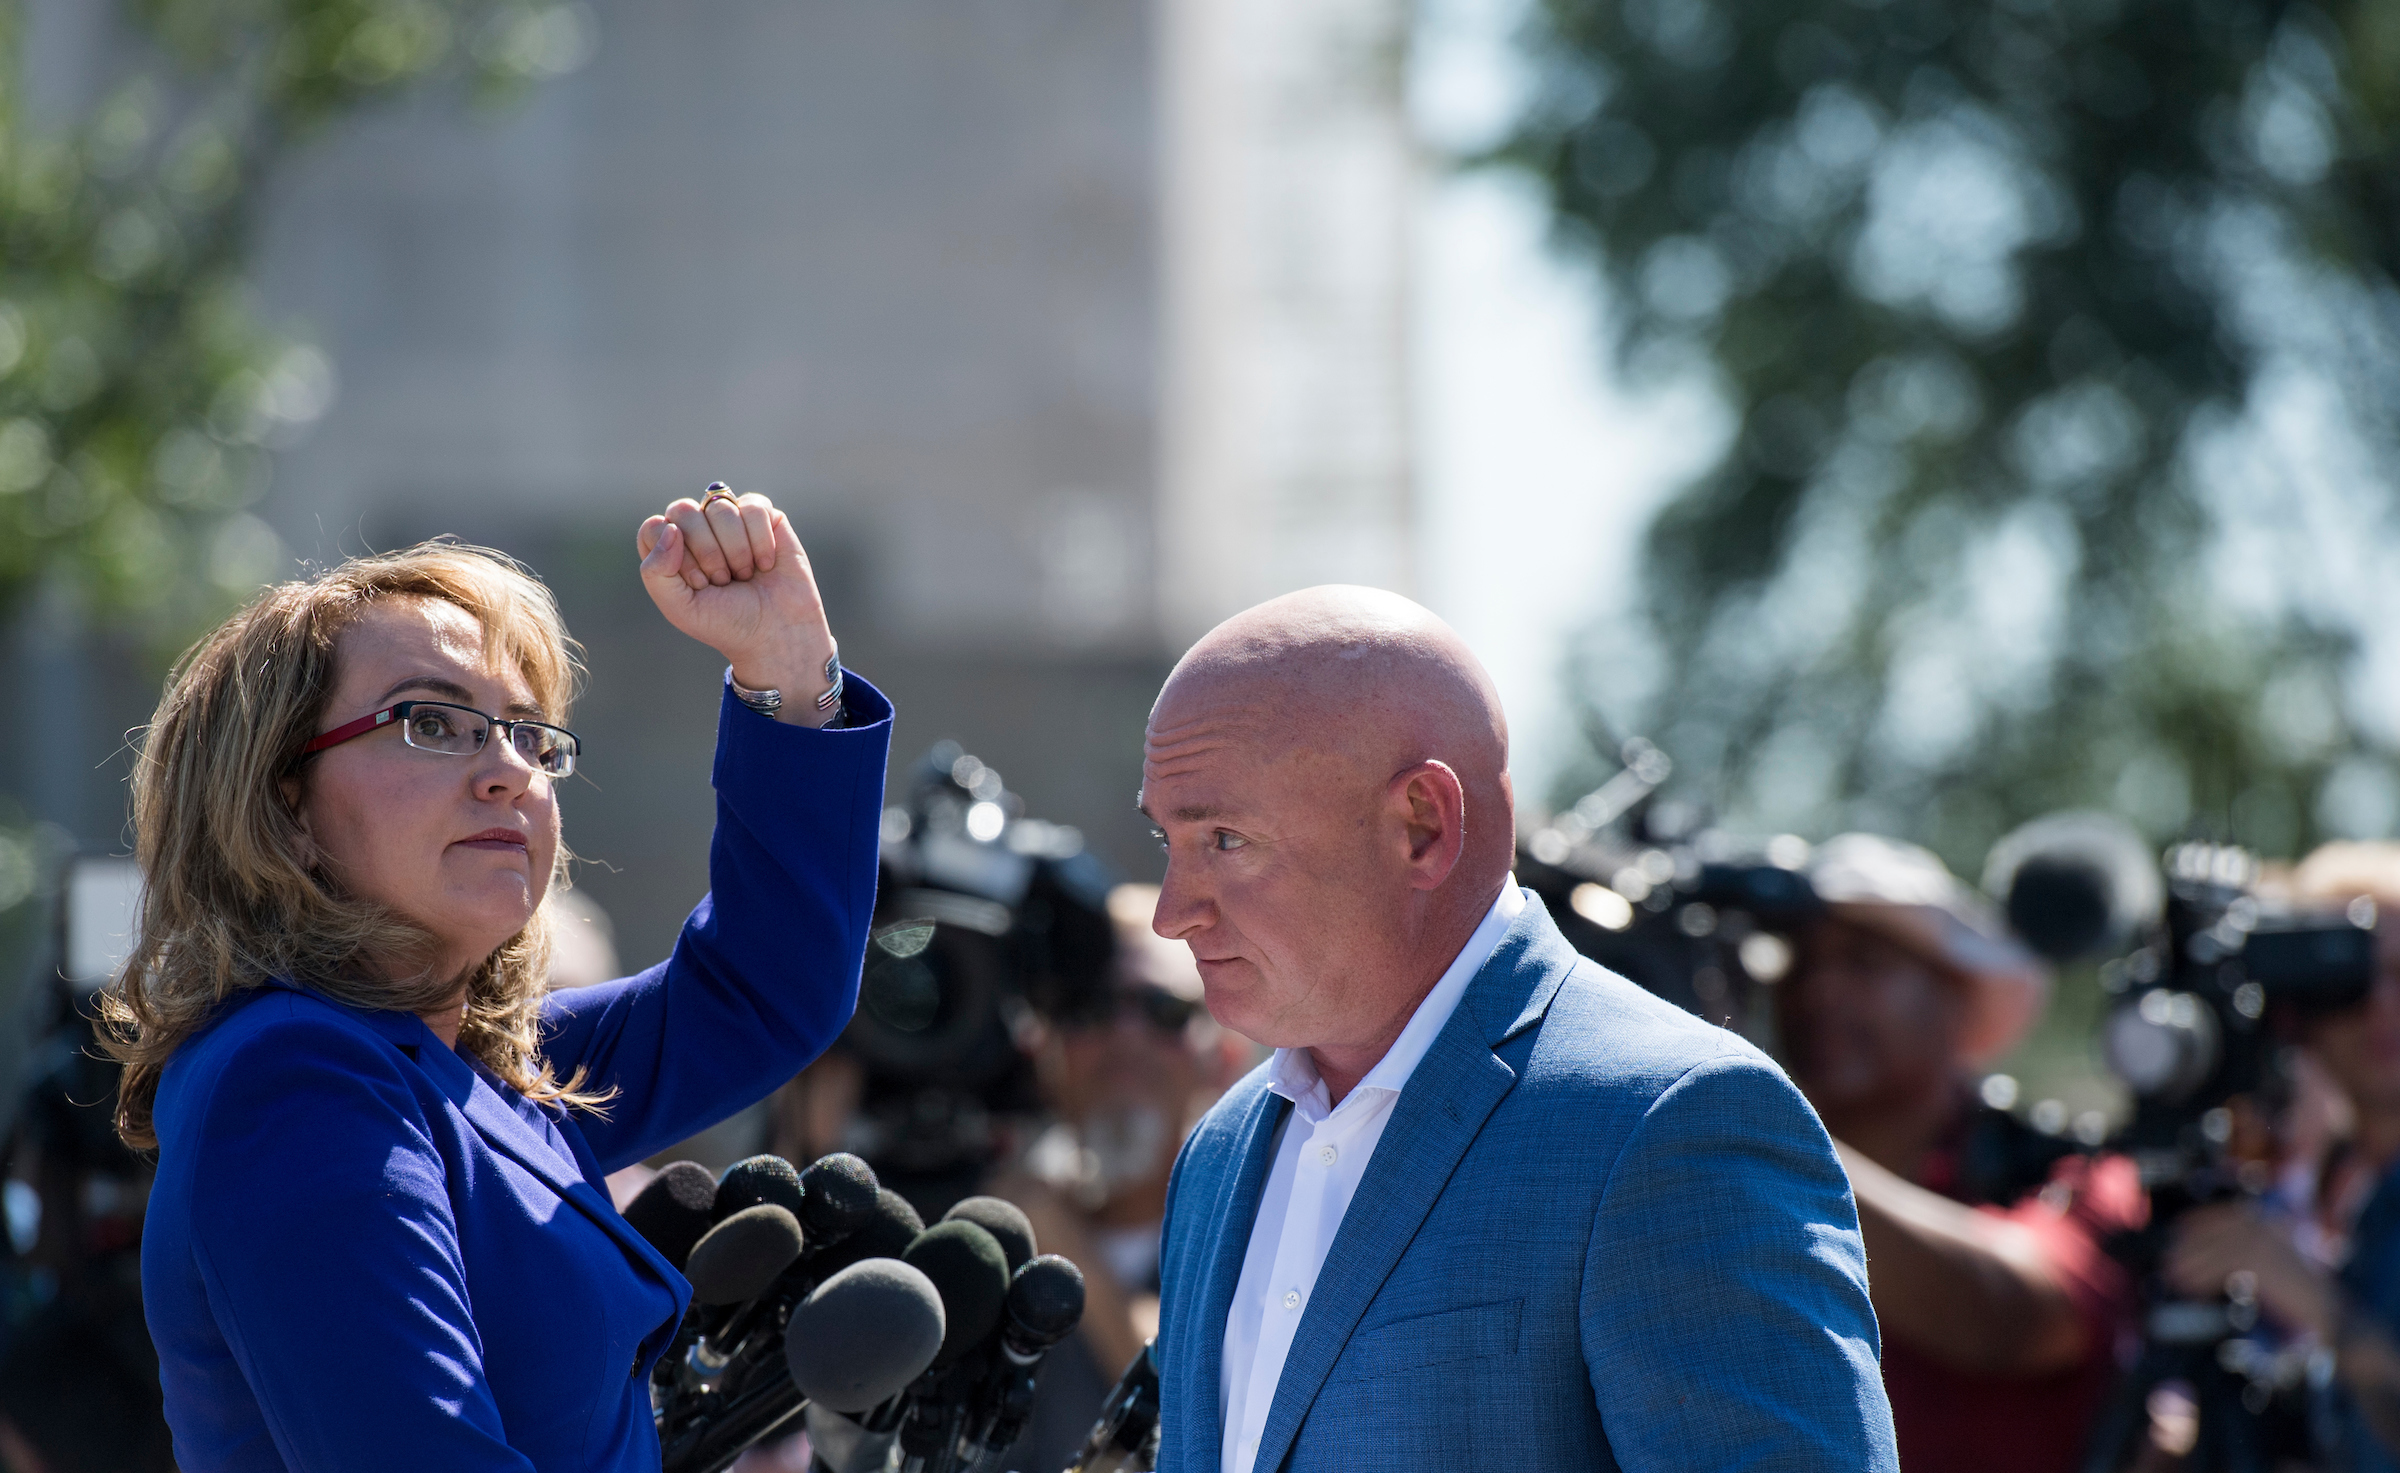 UNITED STATES - OCTOBER 2: Former Congresswoman Gabrielle Giffords, D-Ariz., turns to shake her fist at the Capitol as her husband retired NASA astronaut Captain Mark Kelly looks on during their news conference at the U.S. Capitol on Monday, Oct. 2, 2017, to respond to last night's tragic mass shooting in Las Vegas, NV. They are the Co-Founders of Americans for Responsible Solutions. (Photo By Bill Clark/CQ Roll Call)